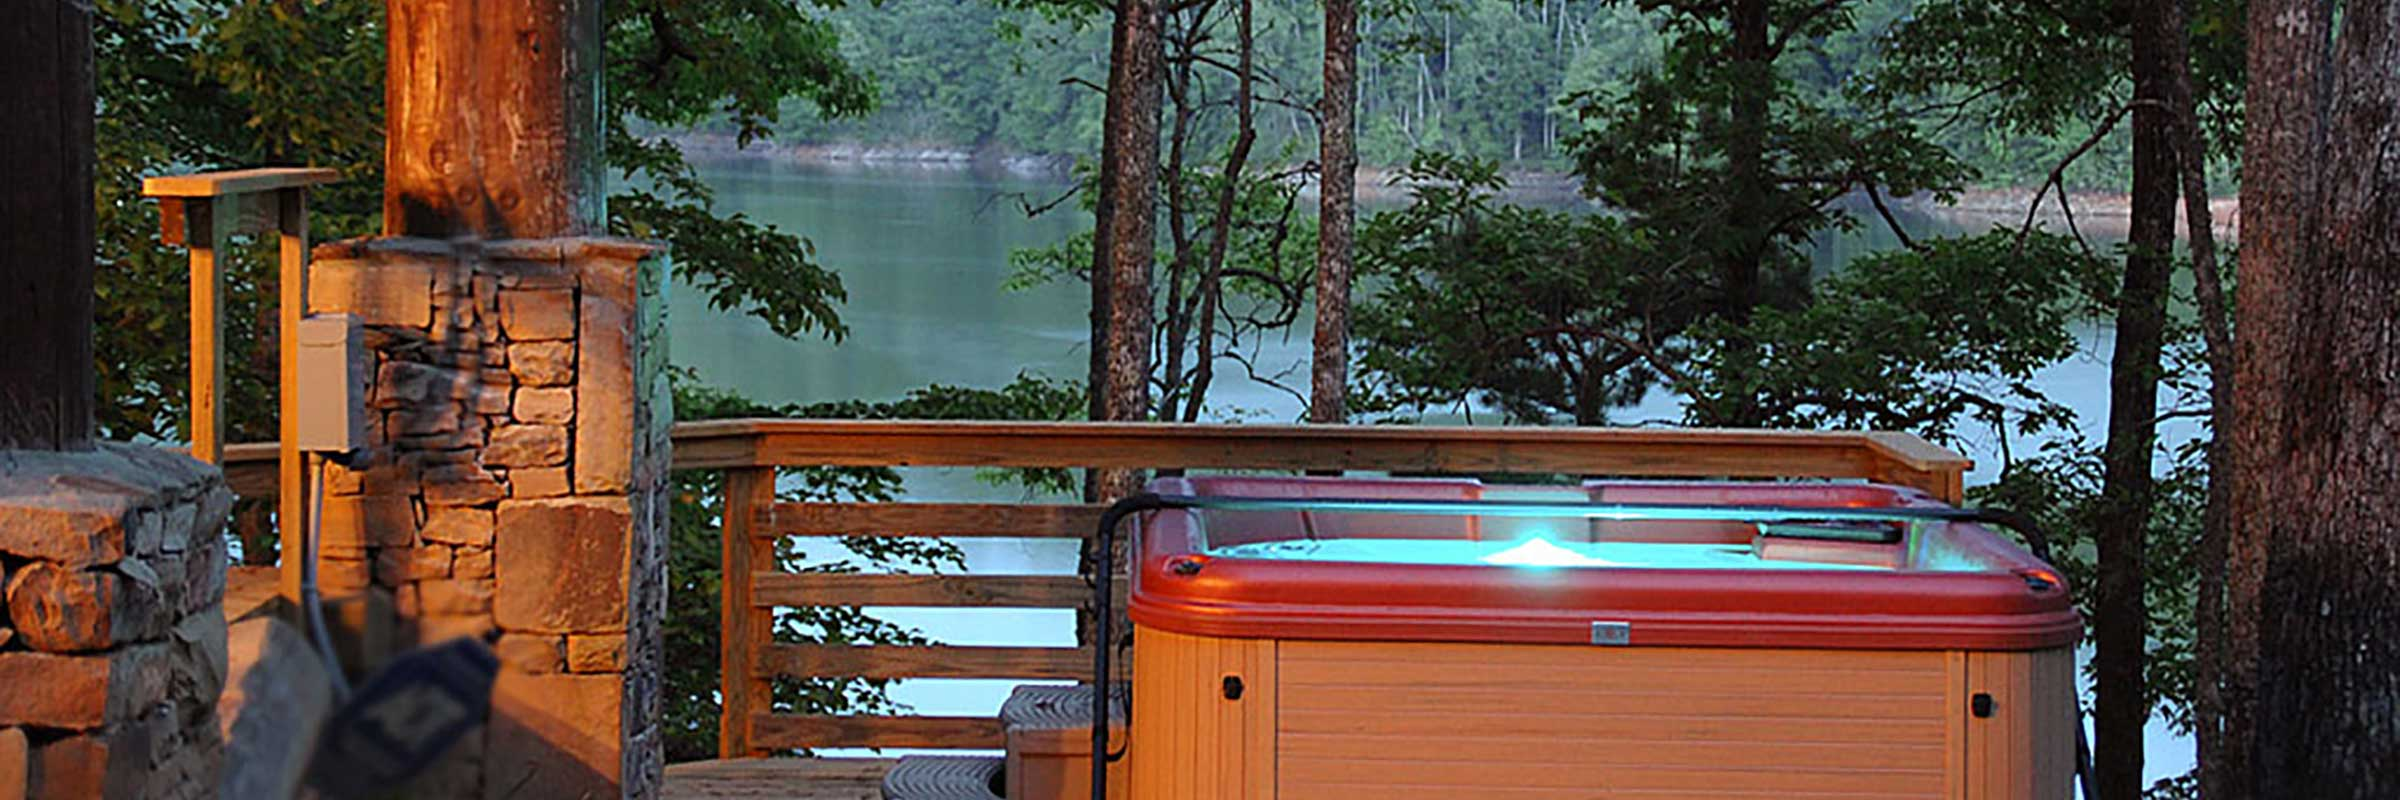 fontana-lake-hot-tub